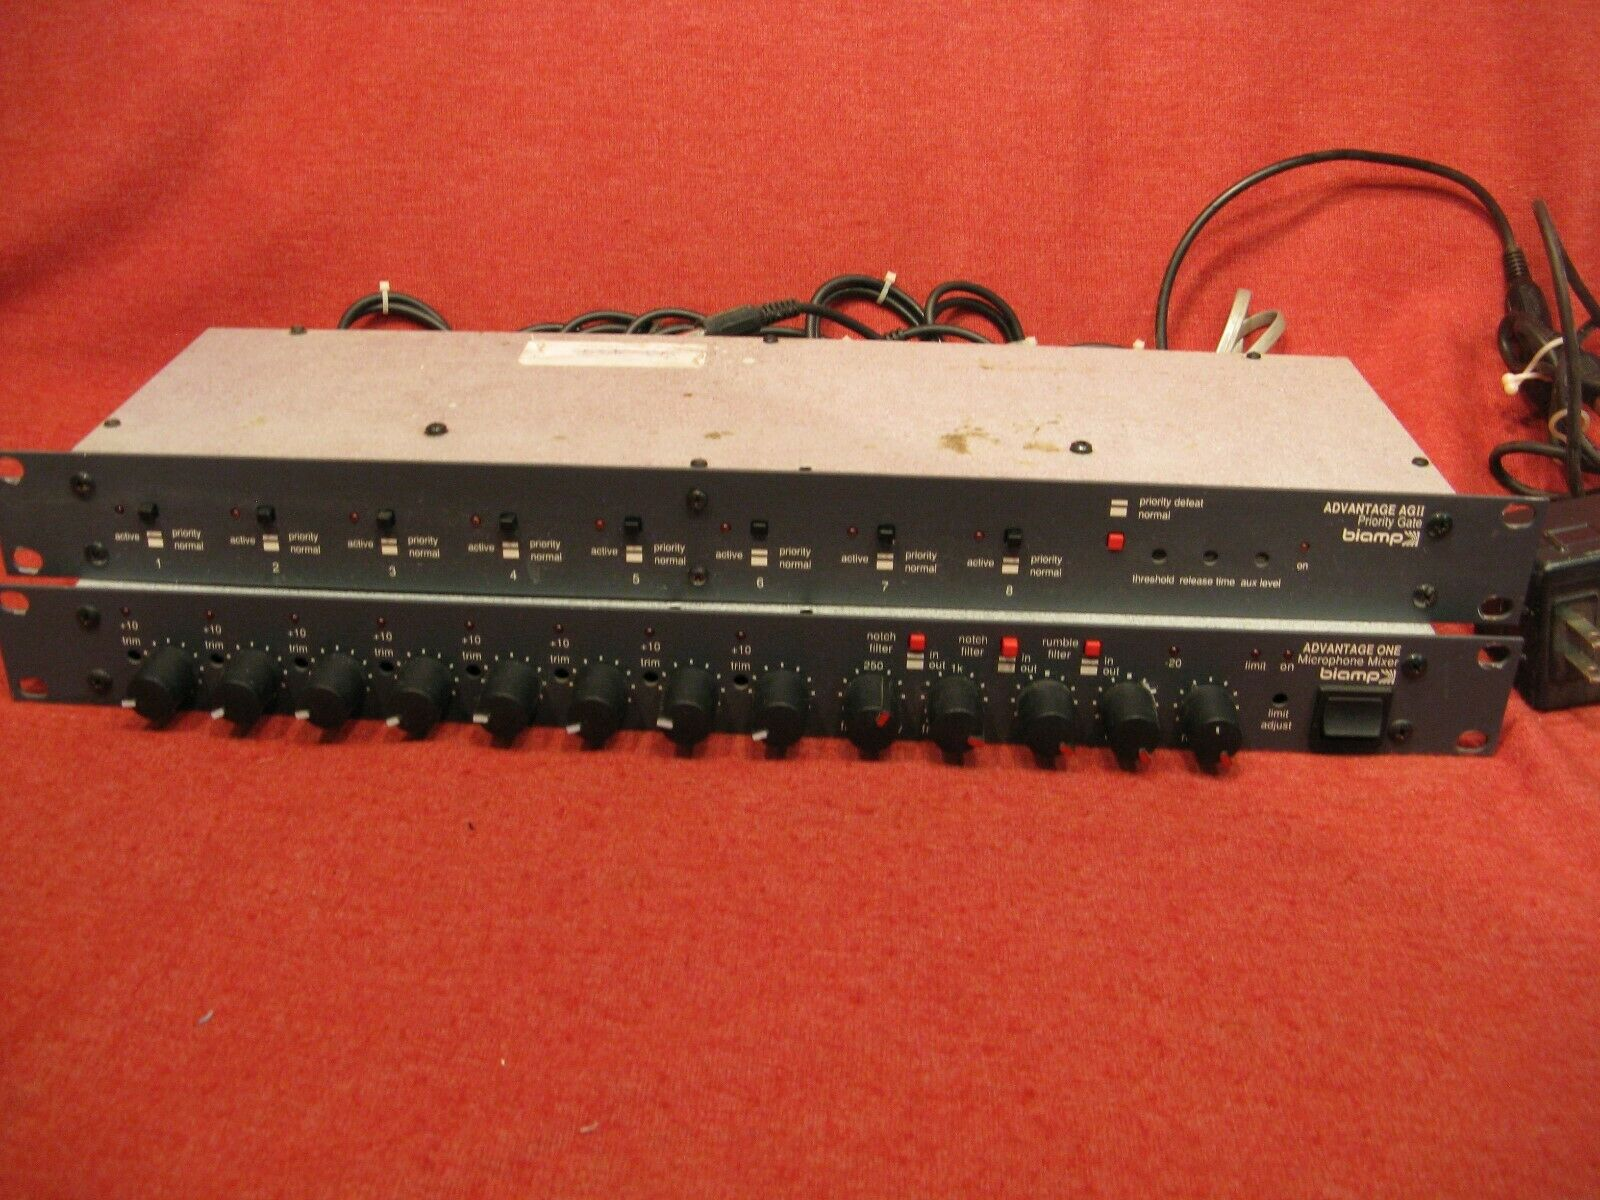 Biamp Advantage One  8 Microphone Mixer + Advantage AG II Priority Gate  Cables